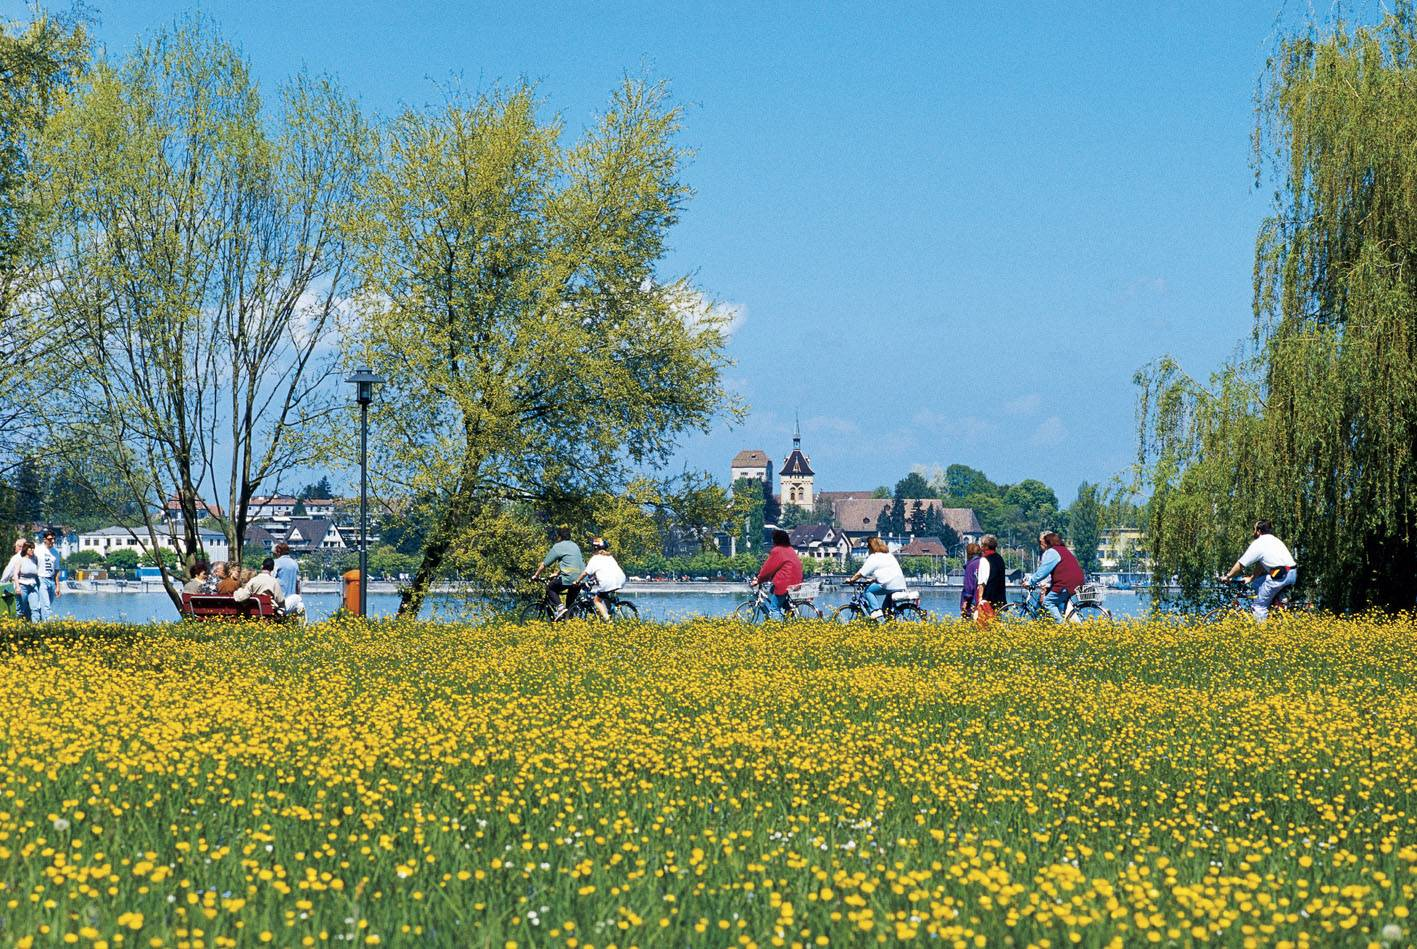 Headwater - Highlights Of Lake Constance By Bike, Self-guided